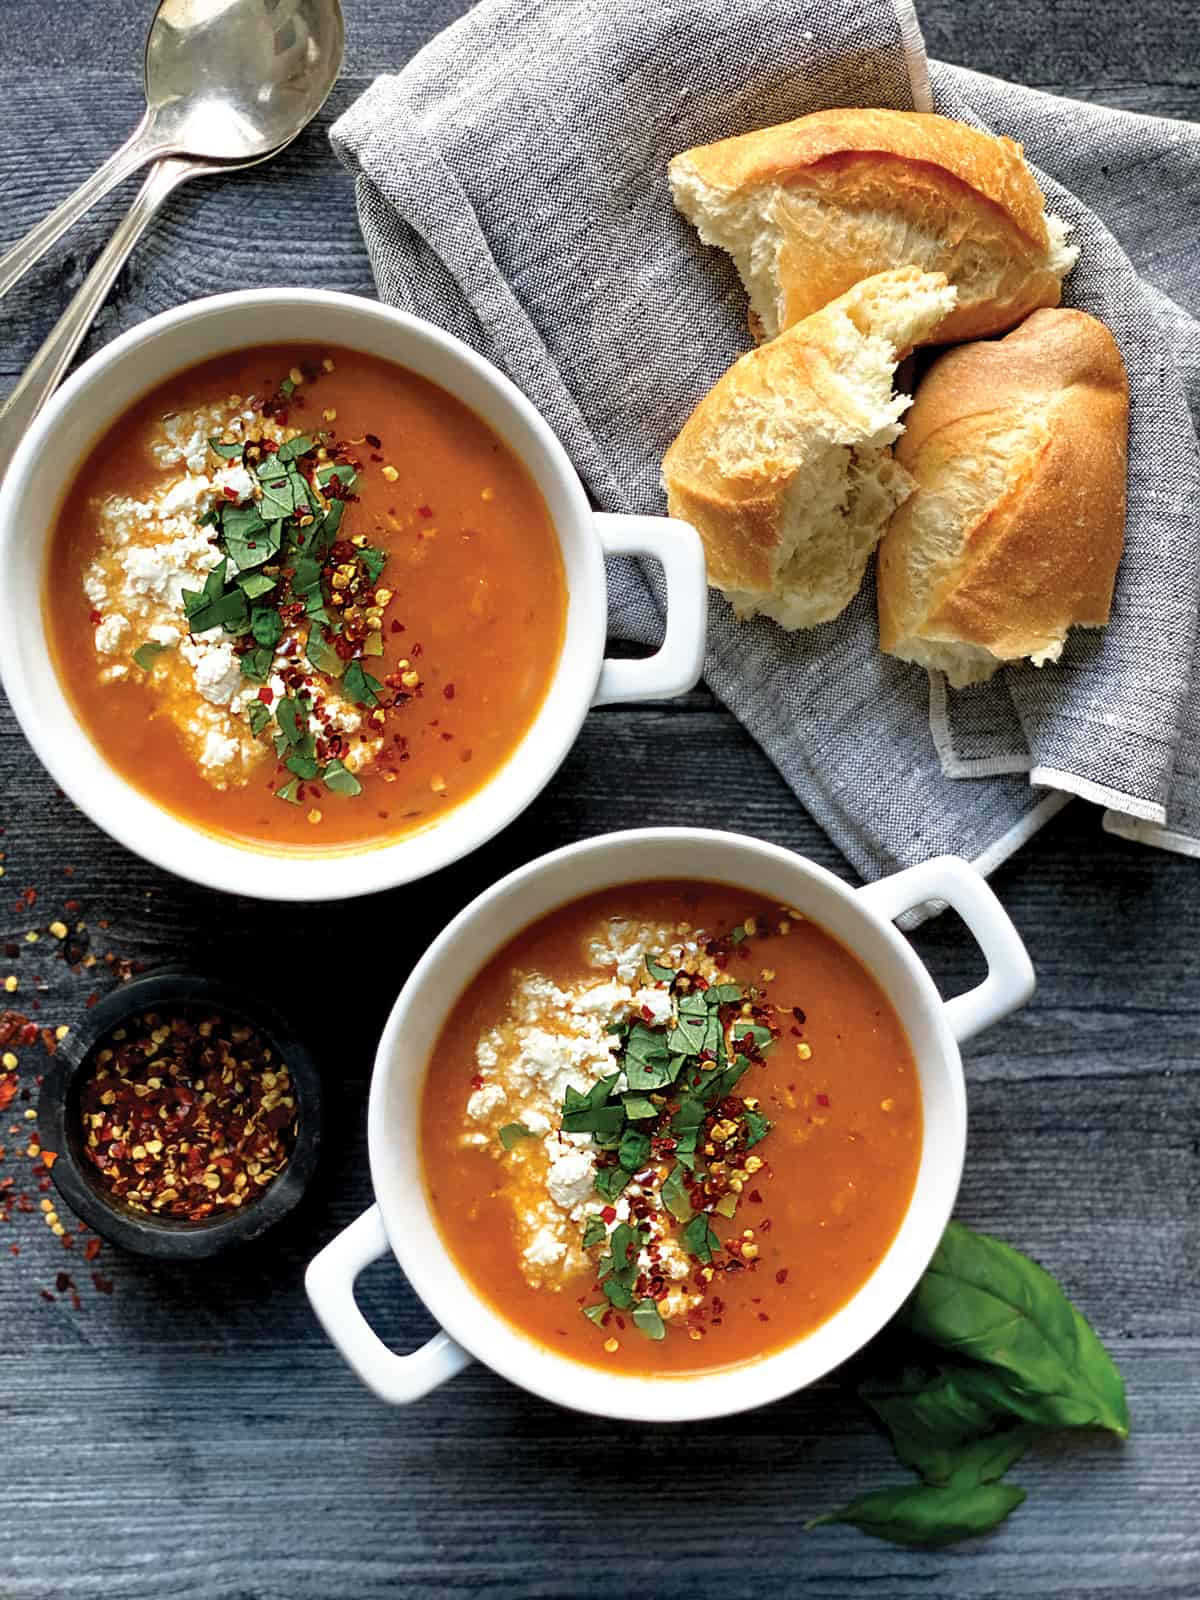 Two bowls with tomato soup with basil and feta, a cloth napkin, and bread on a table.